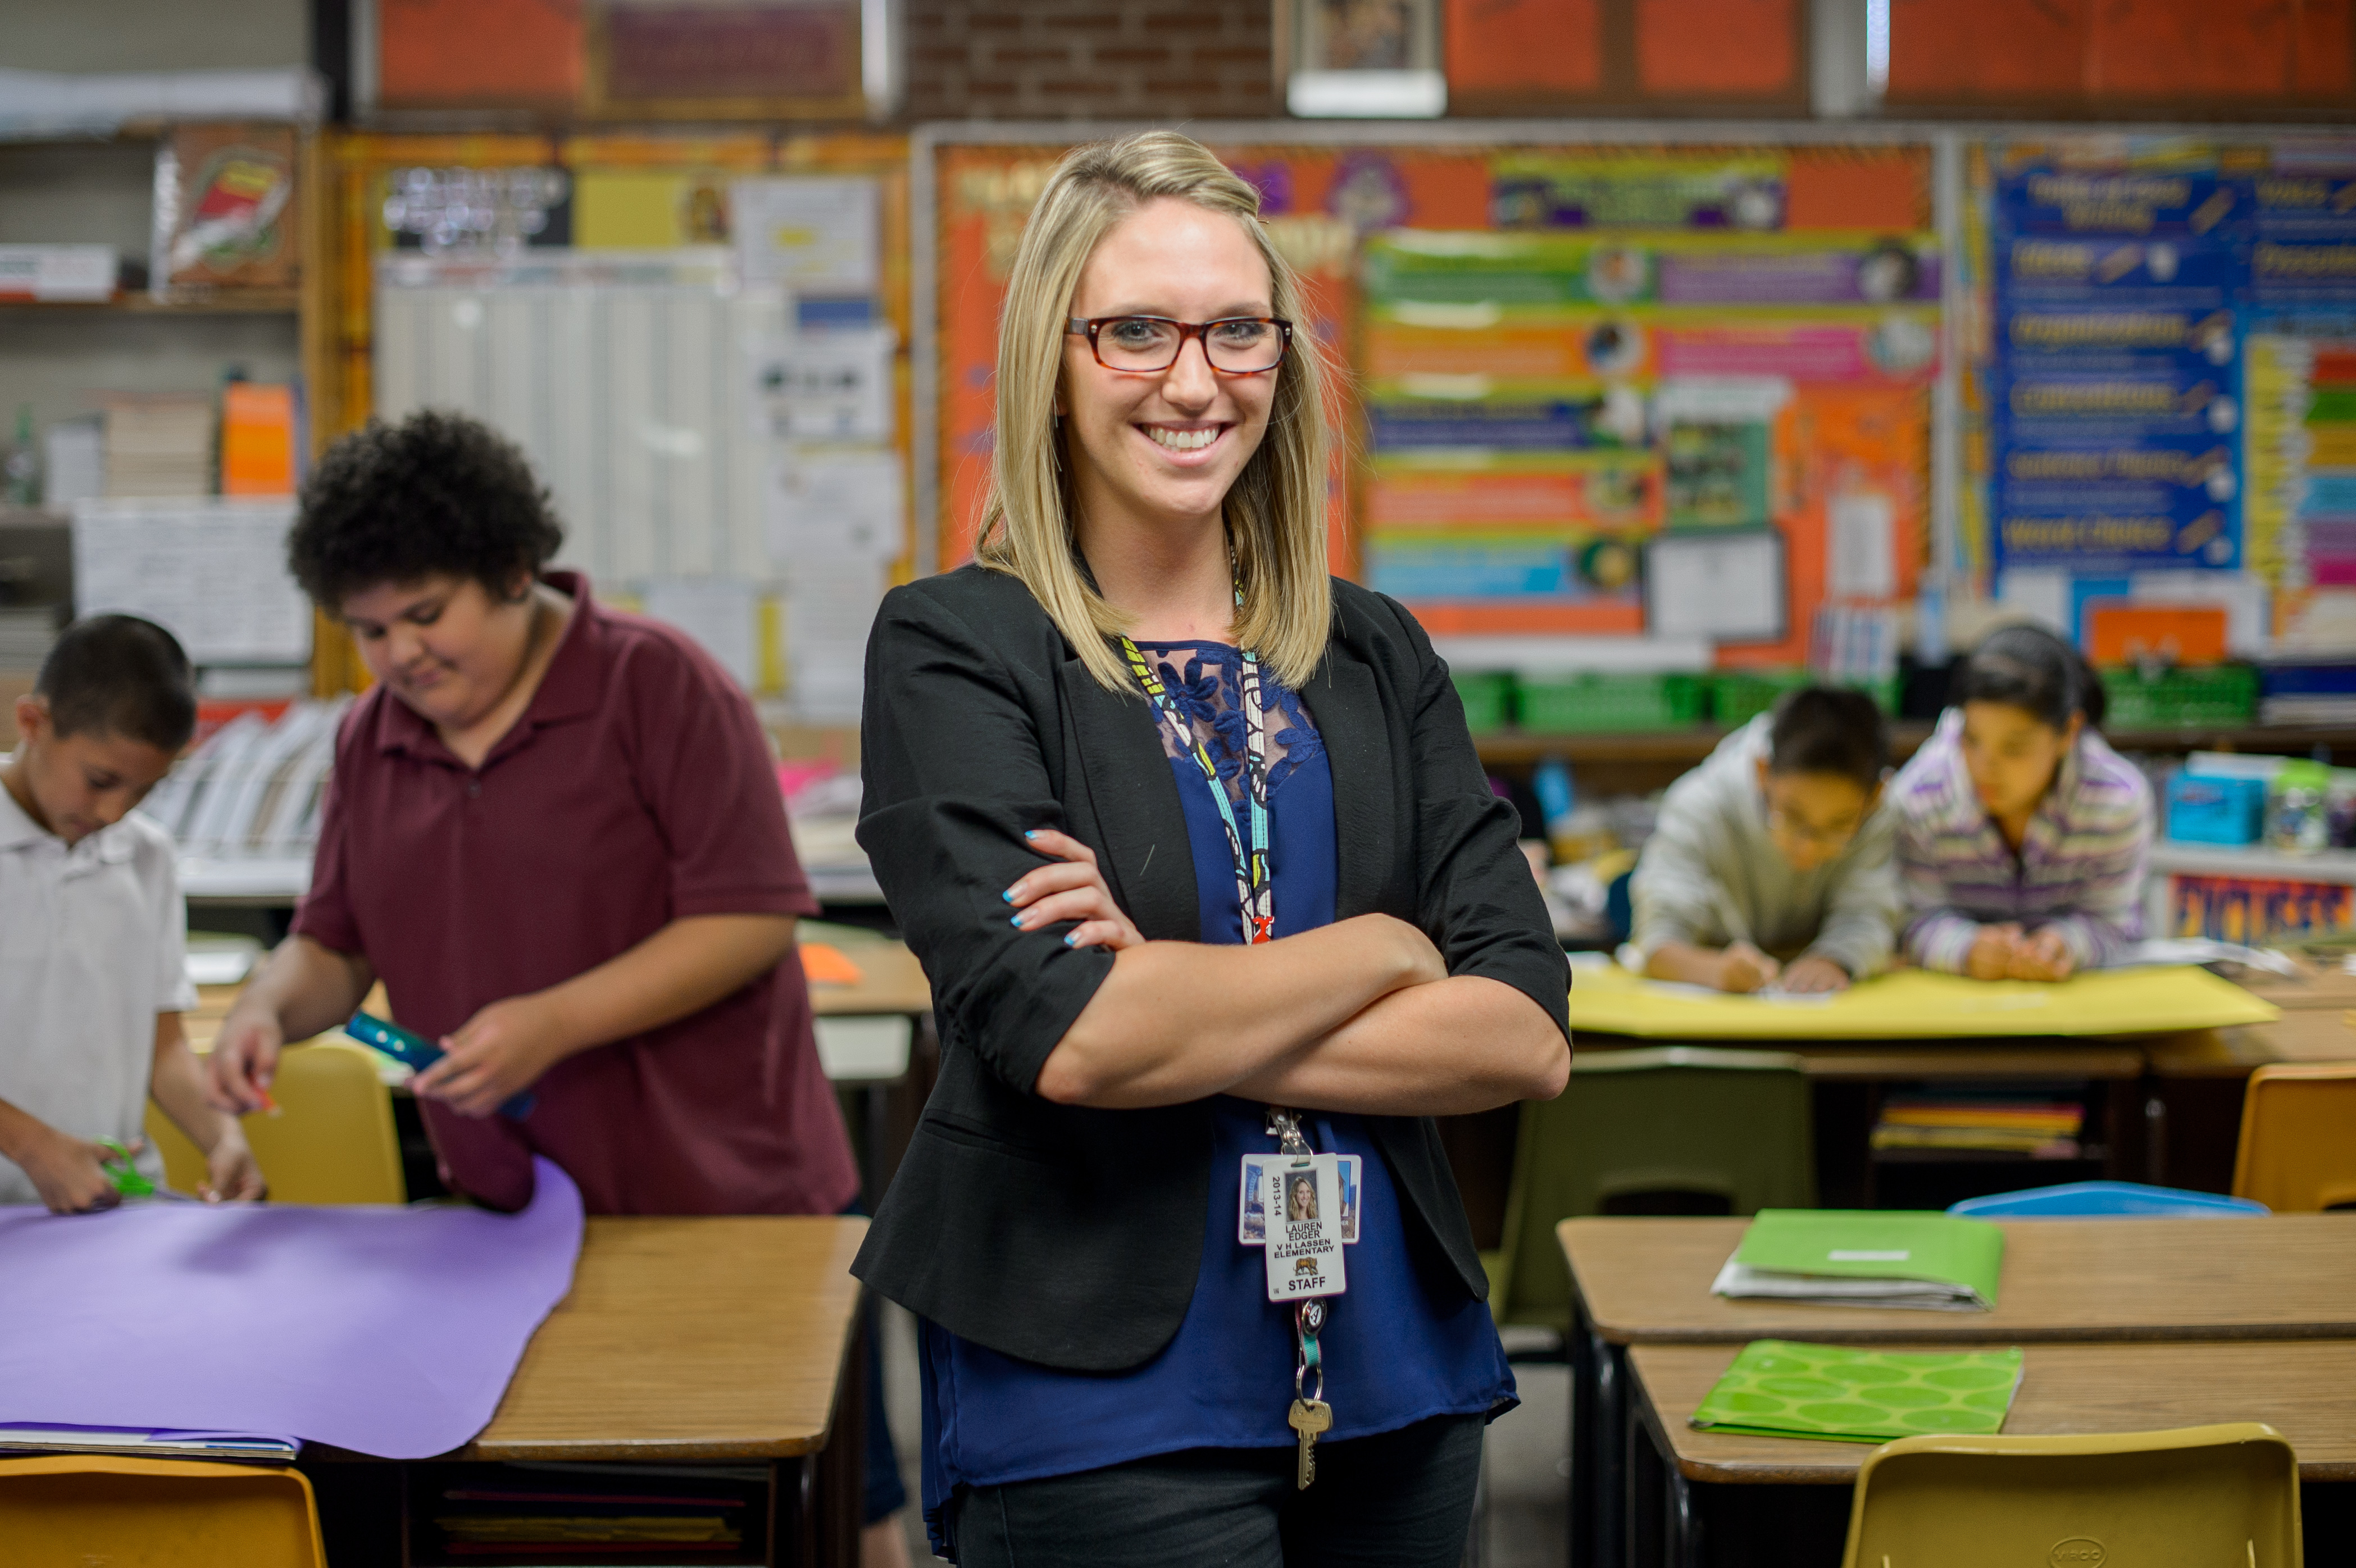 Exceptional future teacher joins Teach For America to follow her ...